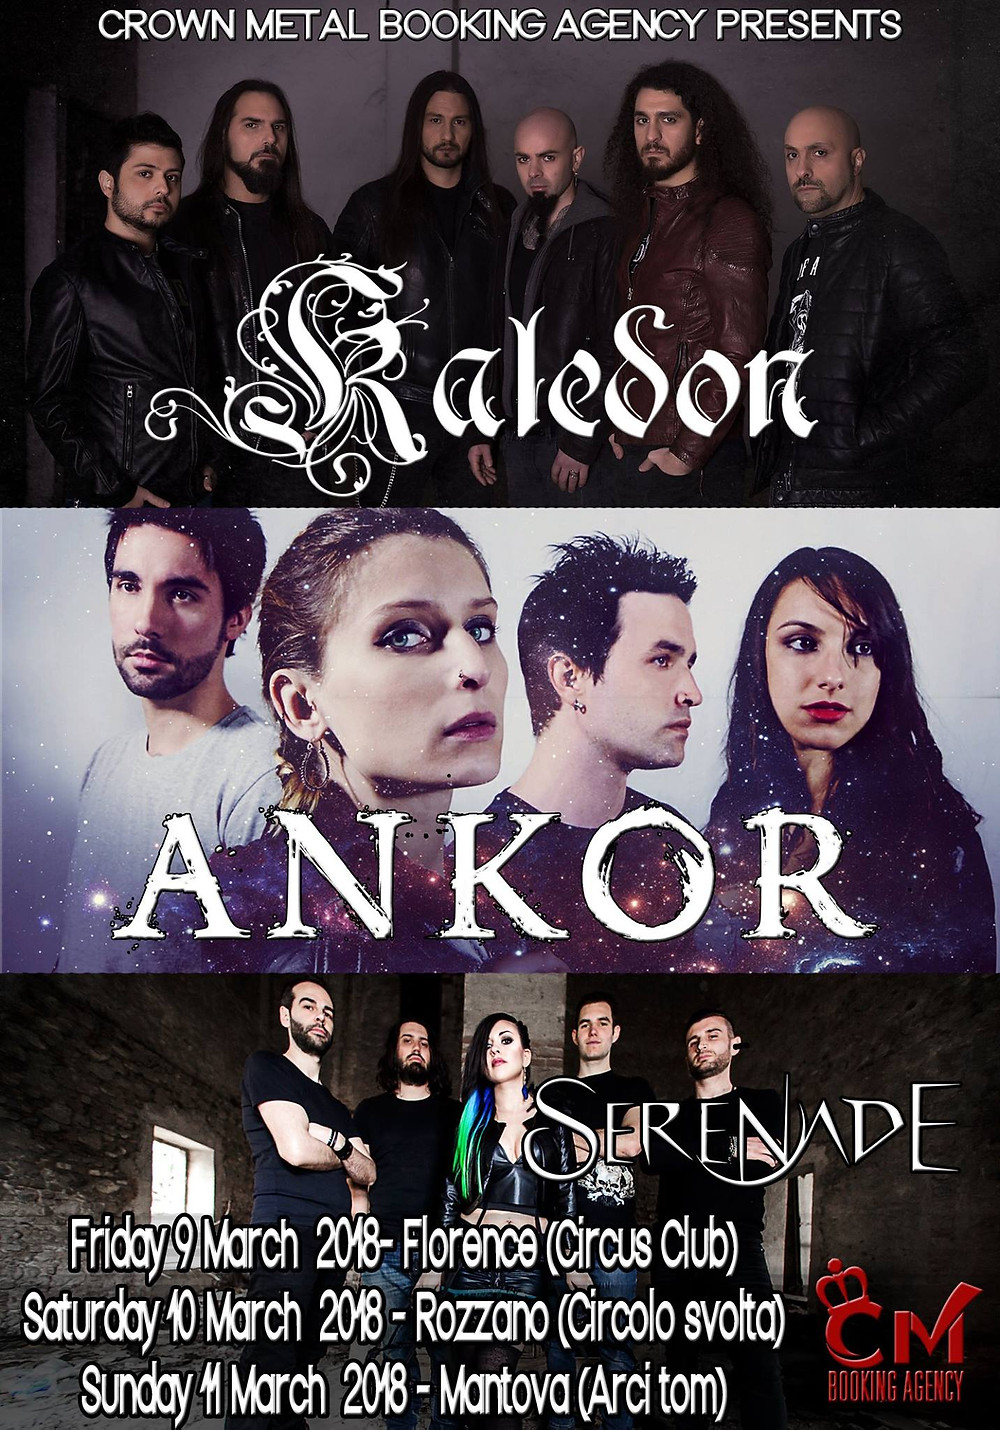 After a short break, we are glad to announce that our tour continues with three Italian dates, where we will support Kaledon and Ankor.